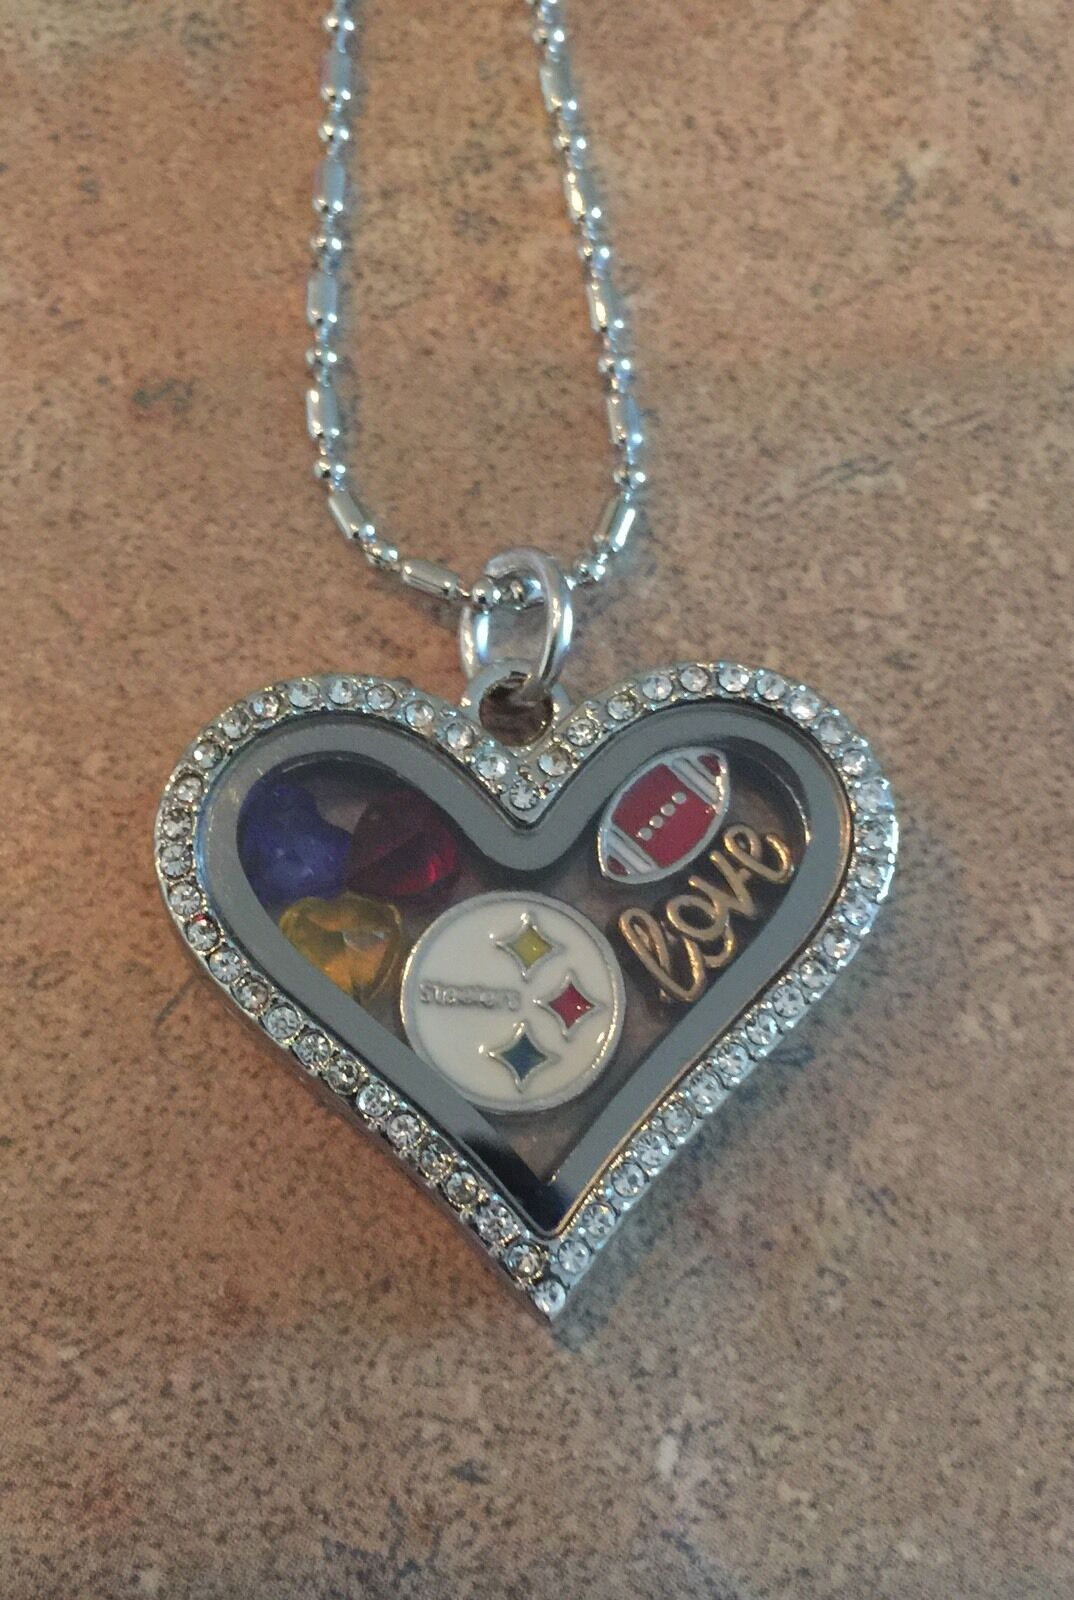 Pittsburgh steelers inspired love charm fits origami owl style picture 1 of 2 jeuxipadfo Choice Image